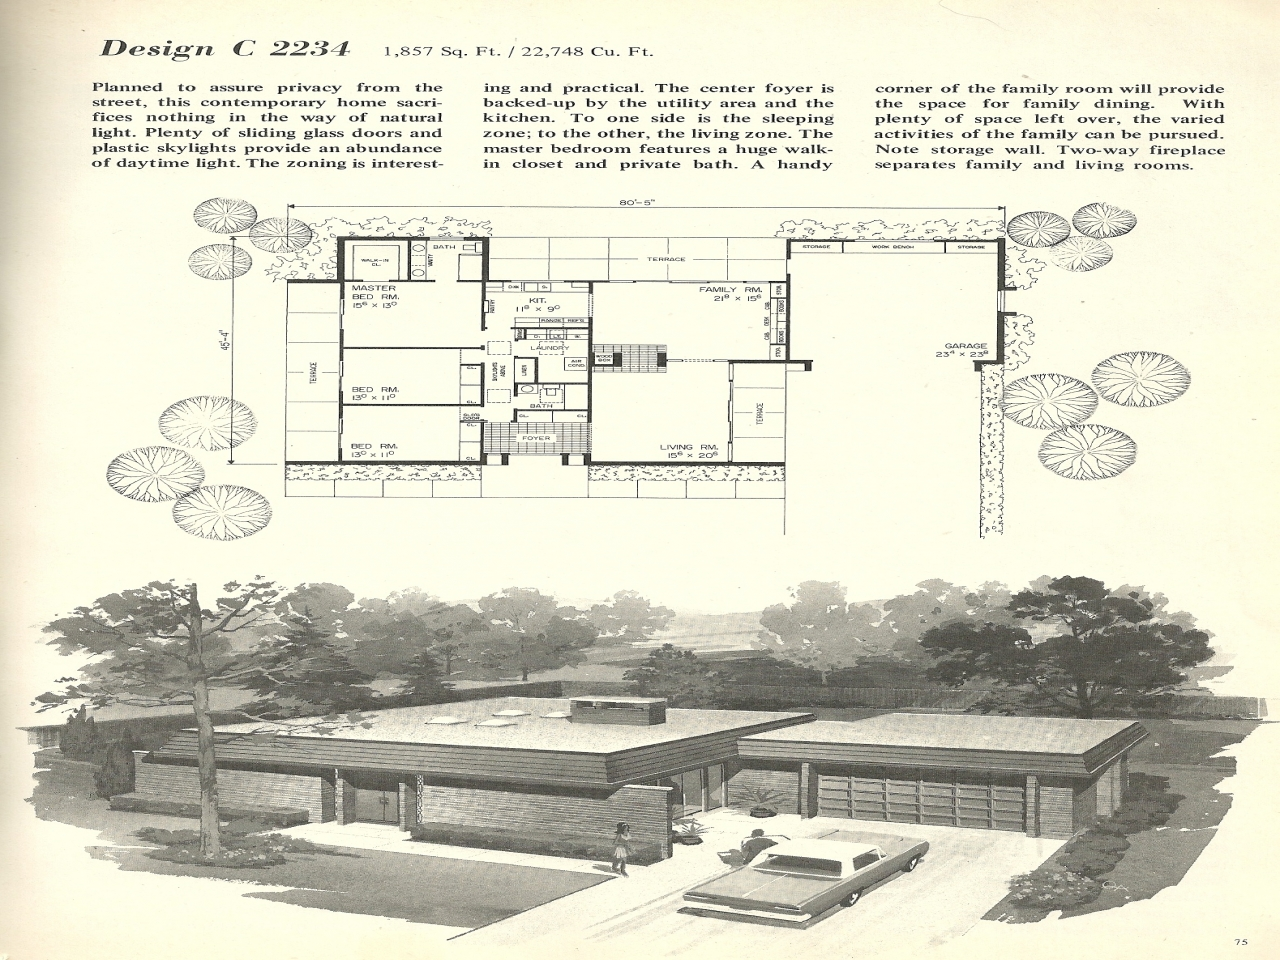 Vintage mid century modern house plan vintage mid century for Retro modern house plans